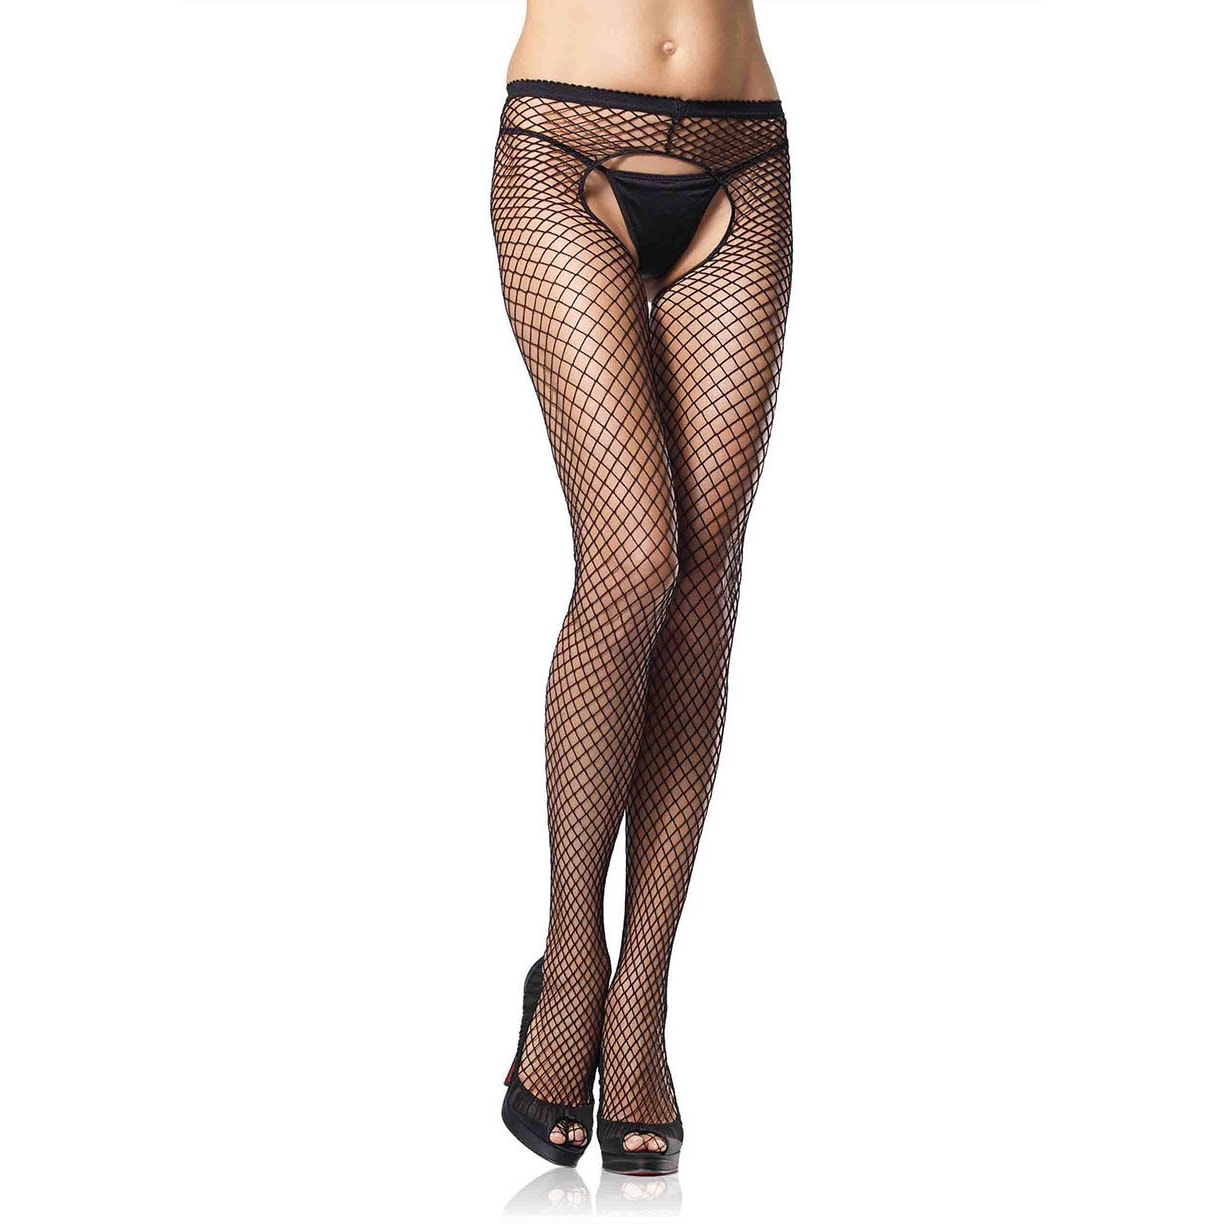 04157bf09e3 Shop Leg Avenue Black Nylon and Spandex Plus-size Industrial Net Pantyhose  - Ships To Canada - Overstock - 14191762